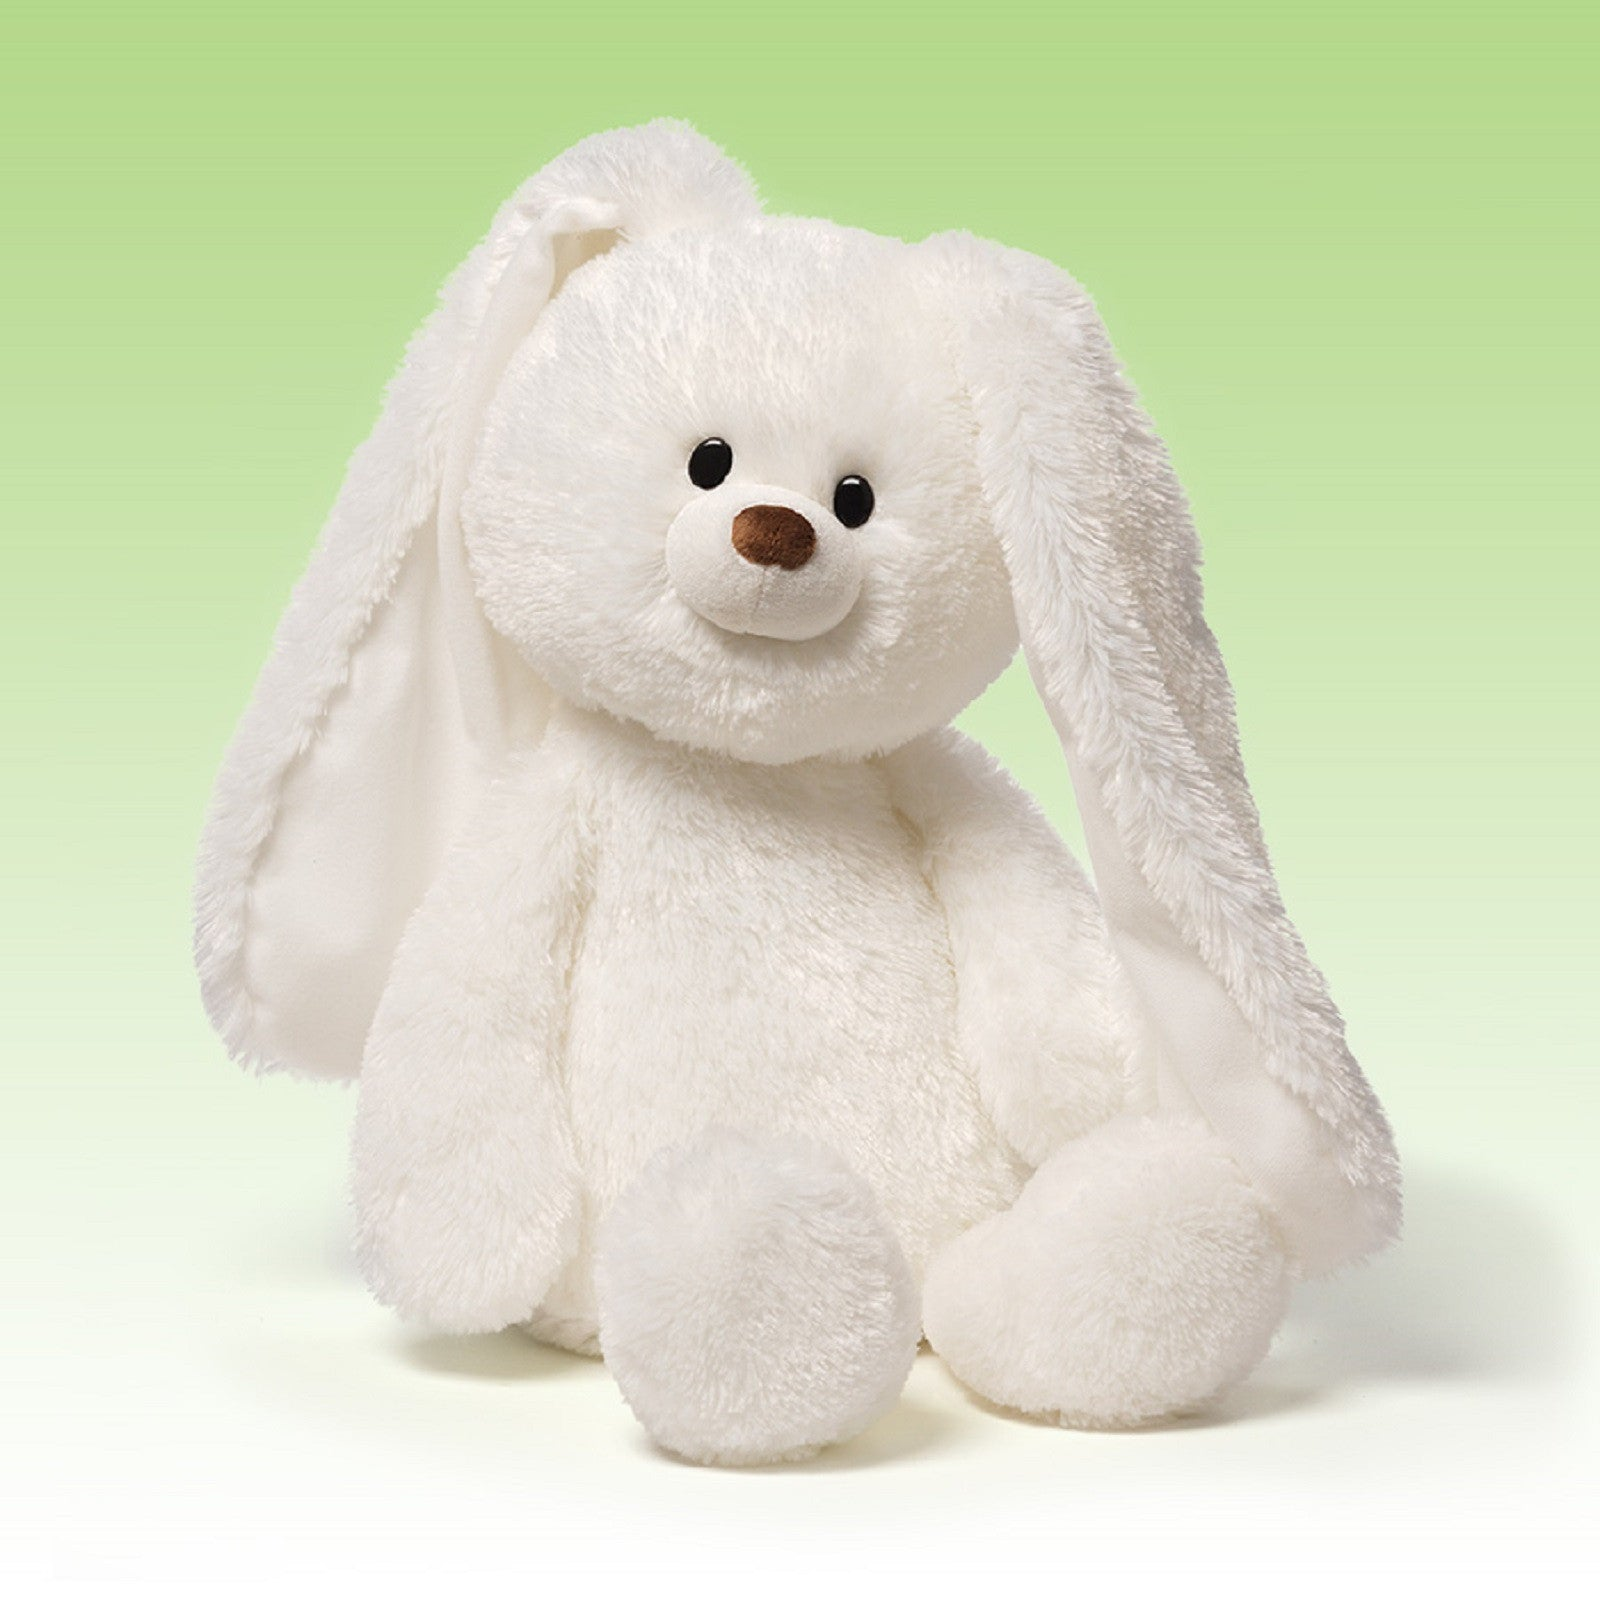 Gund - Floppy Bunny in 2 Sizes